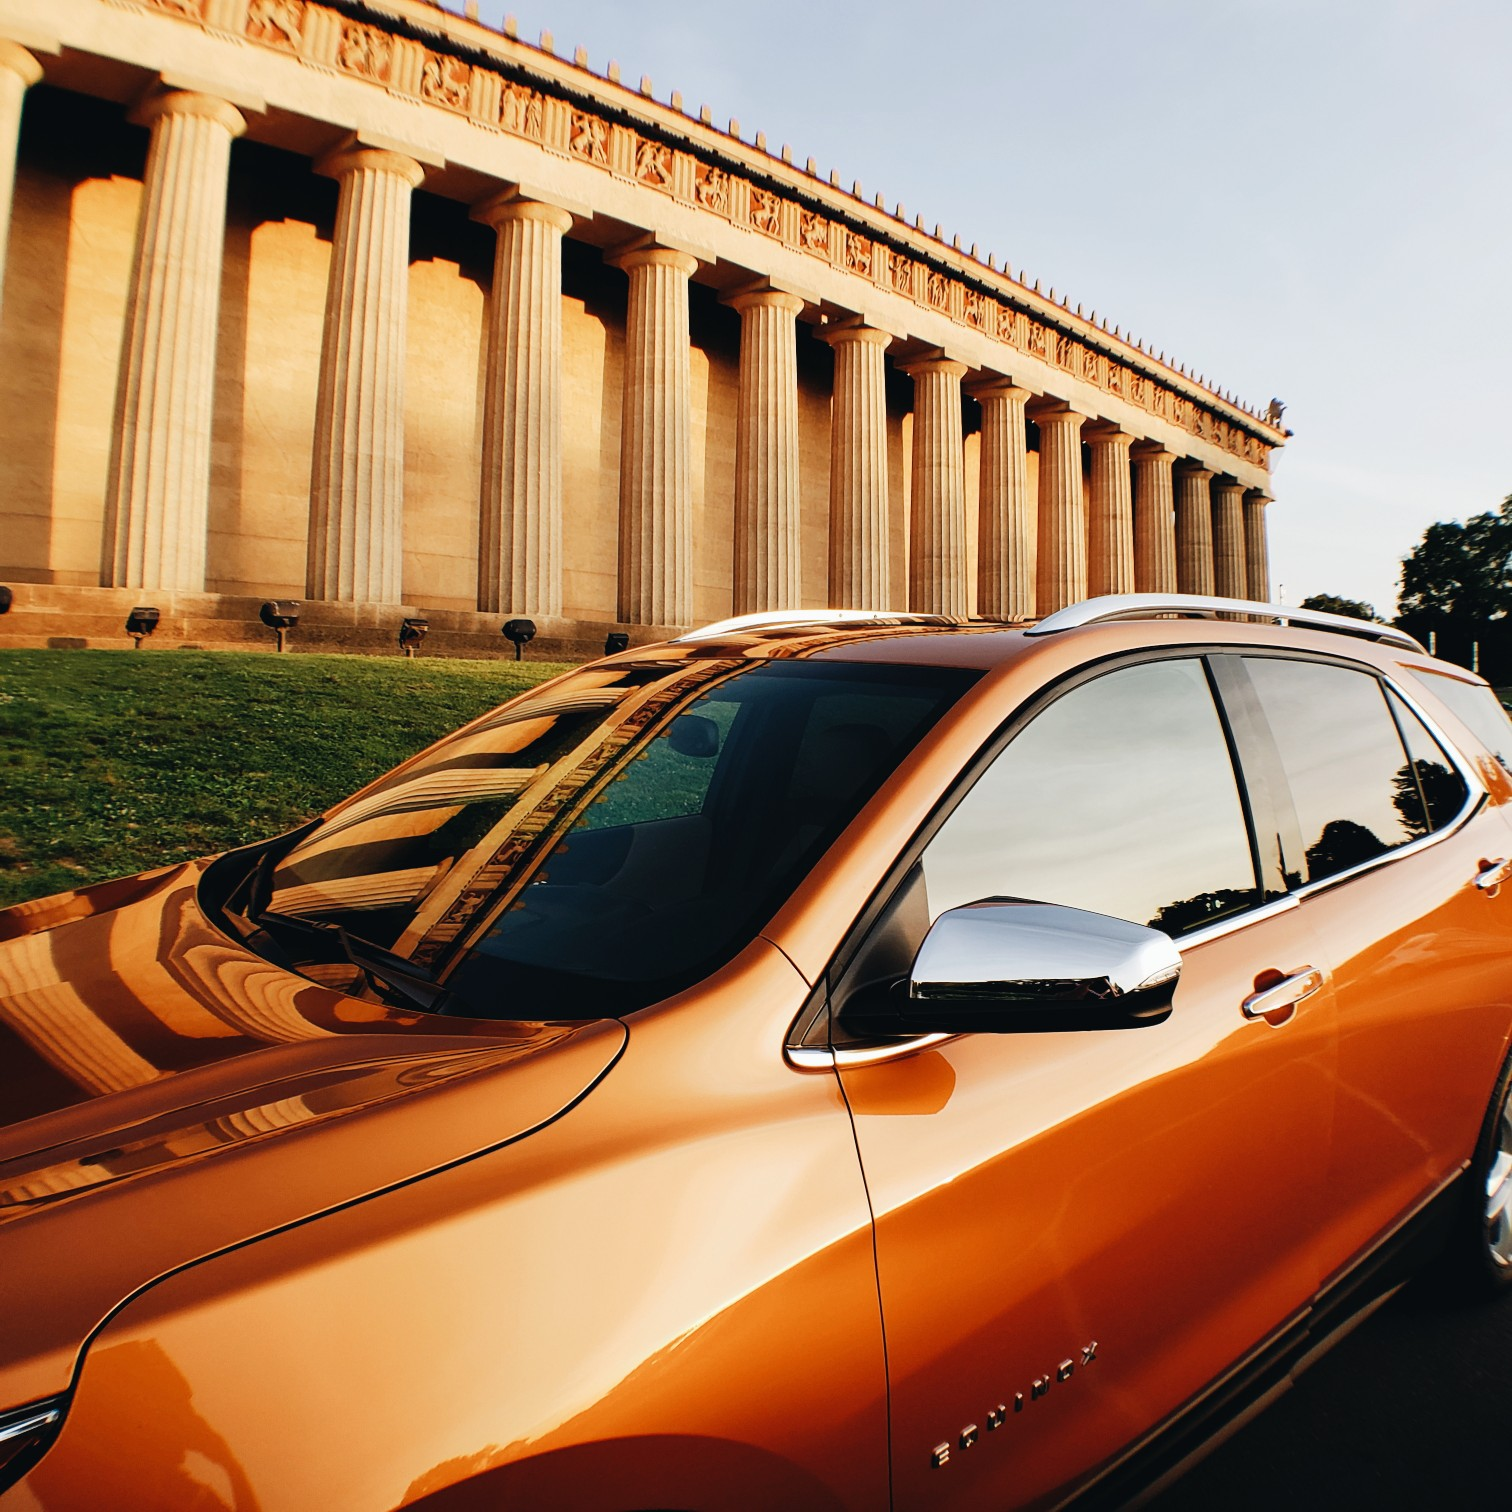 2018 Chevrolet Equinox Orange Burst Metallic Car Review